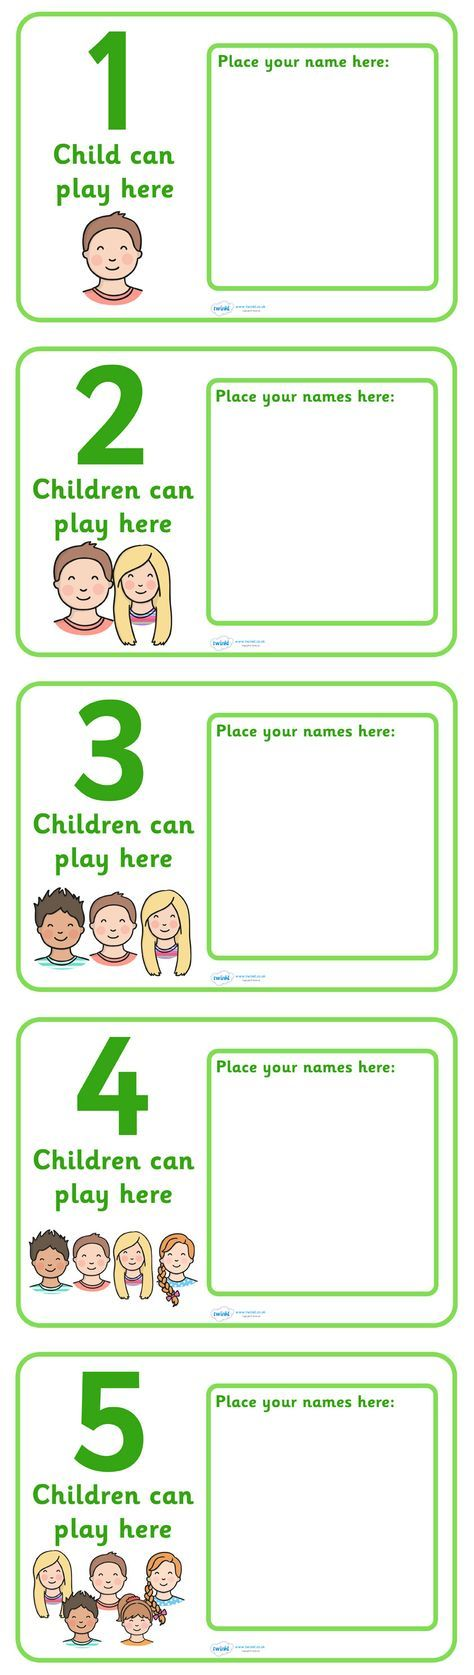 Classroom Management Ideas Ks1 ~ Best learning center signs and ideas images on